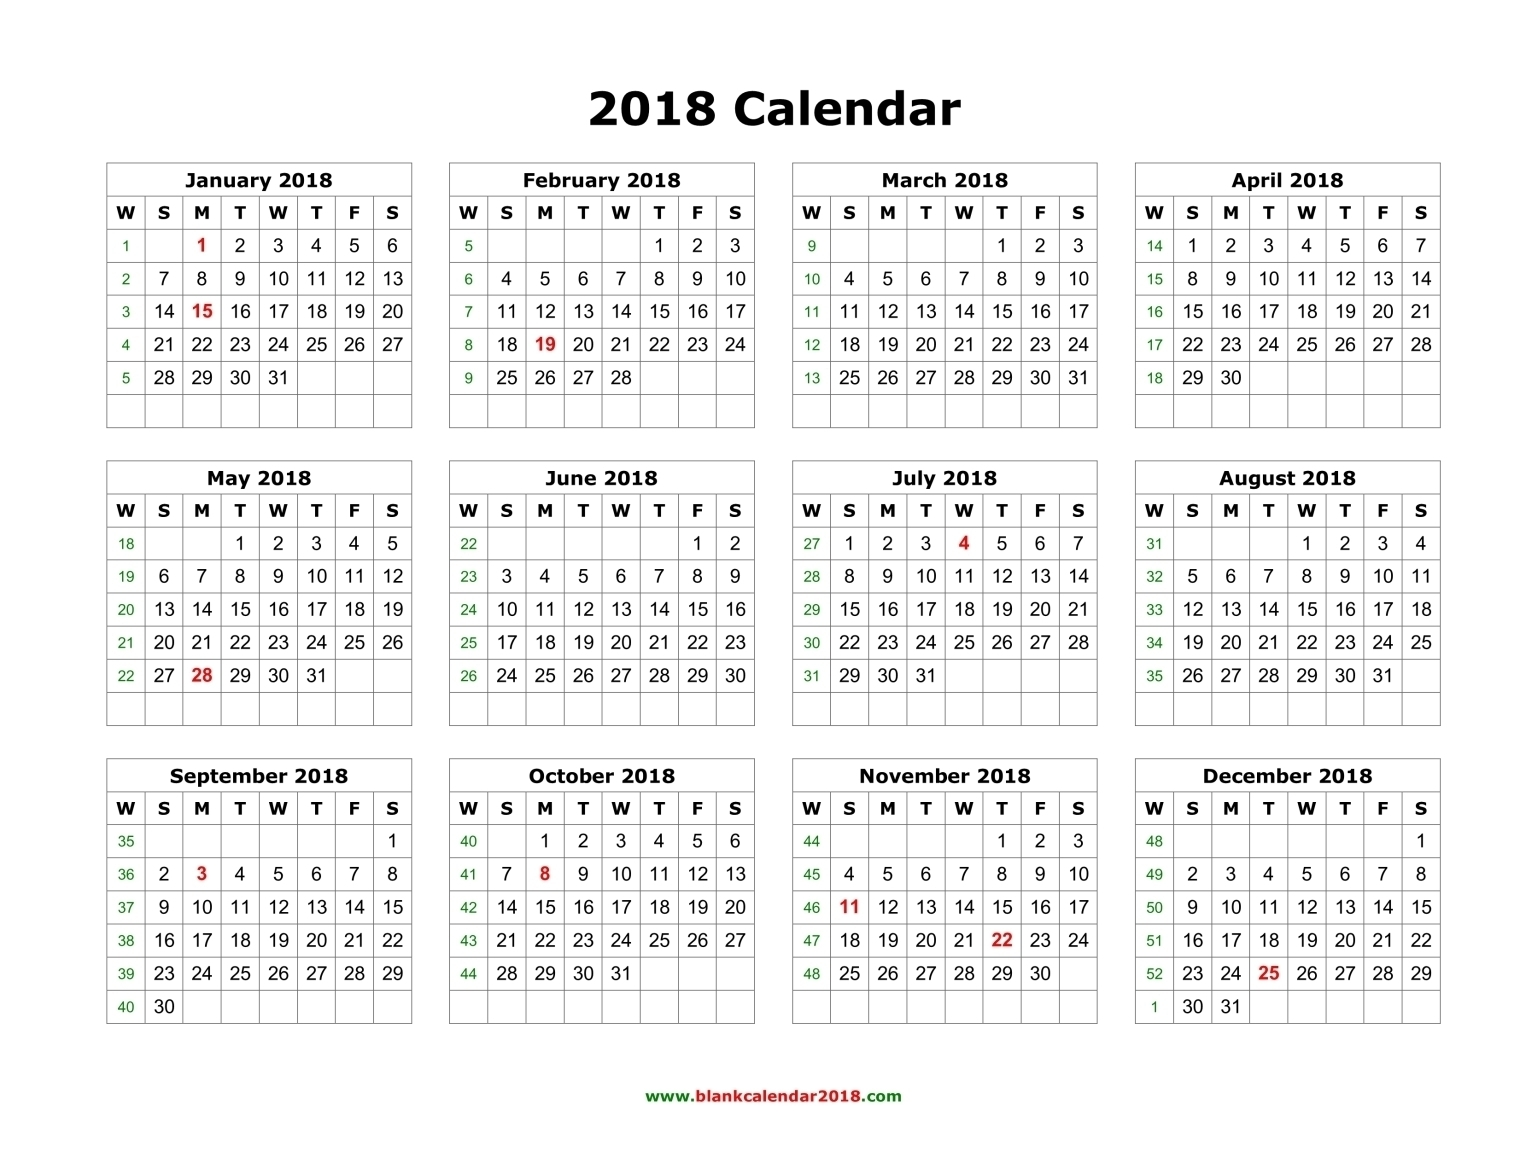 Blank Calendar 2018 with Fill-In Blank 12 Month Calendar